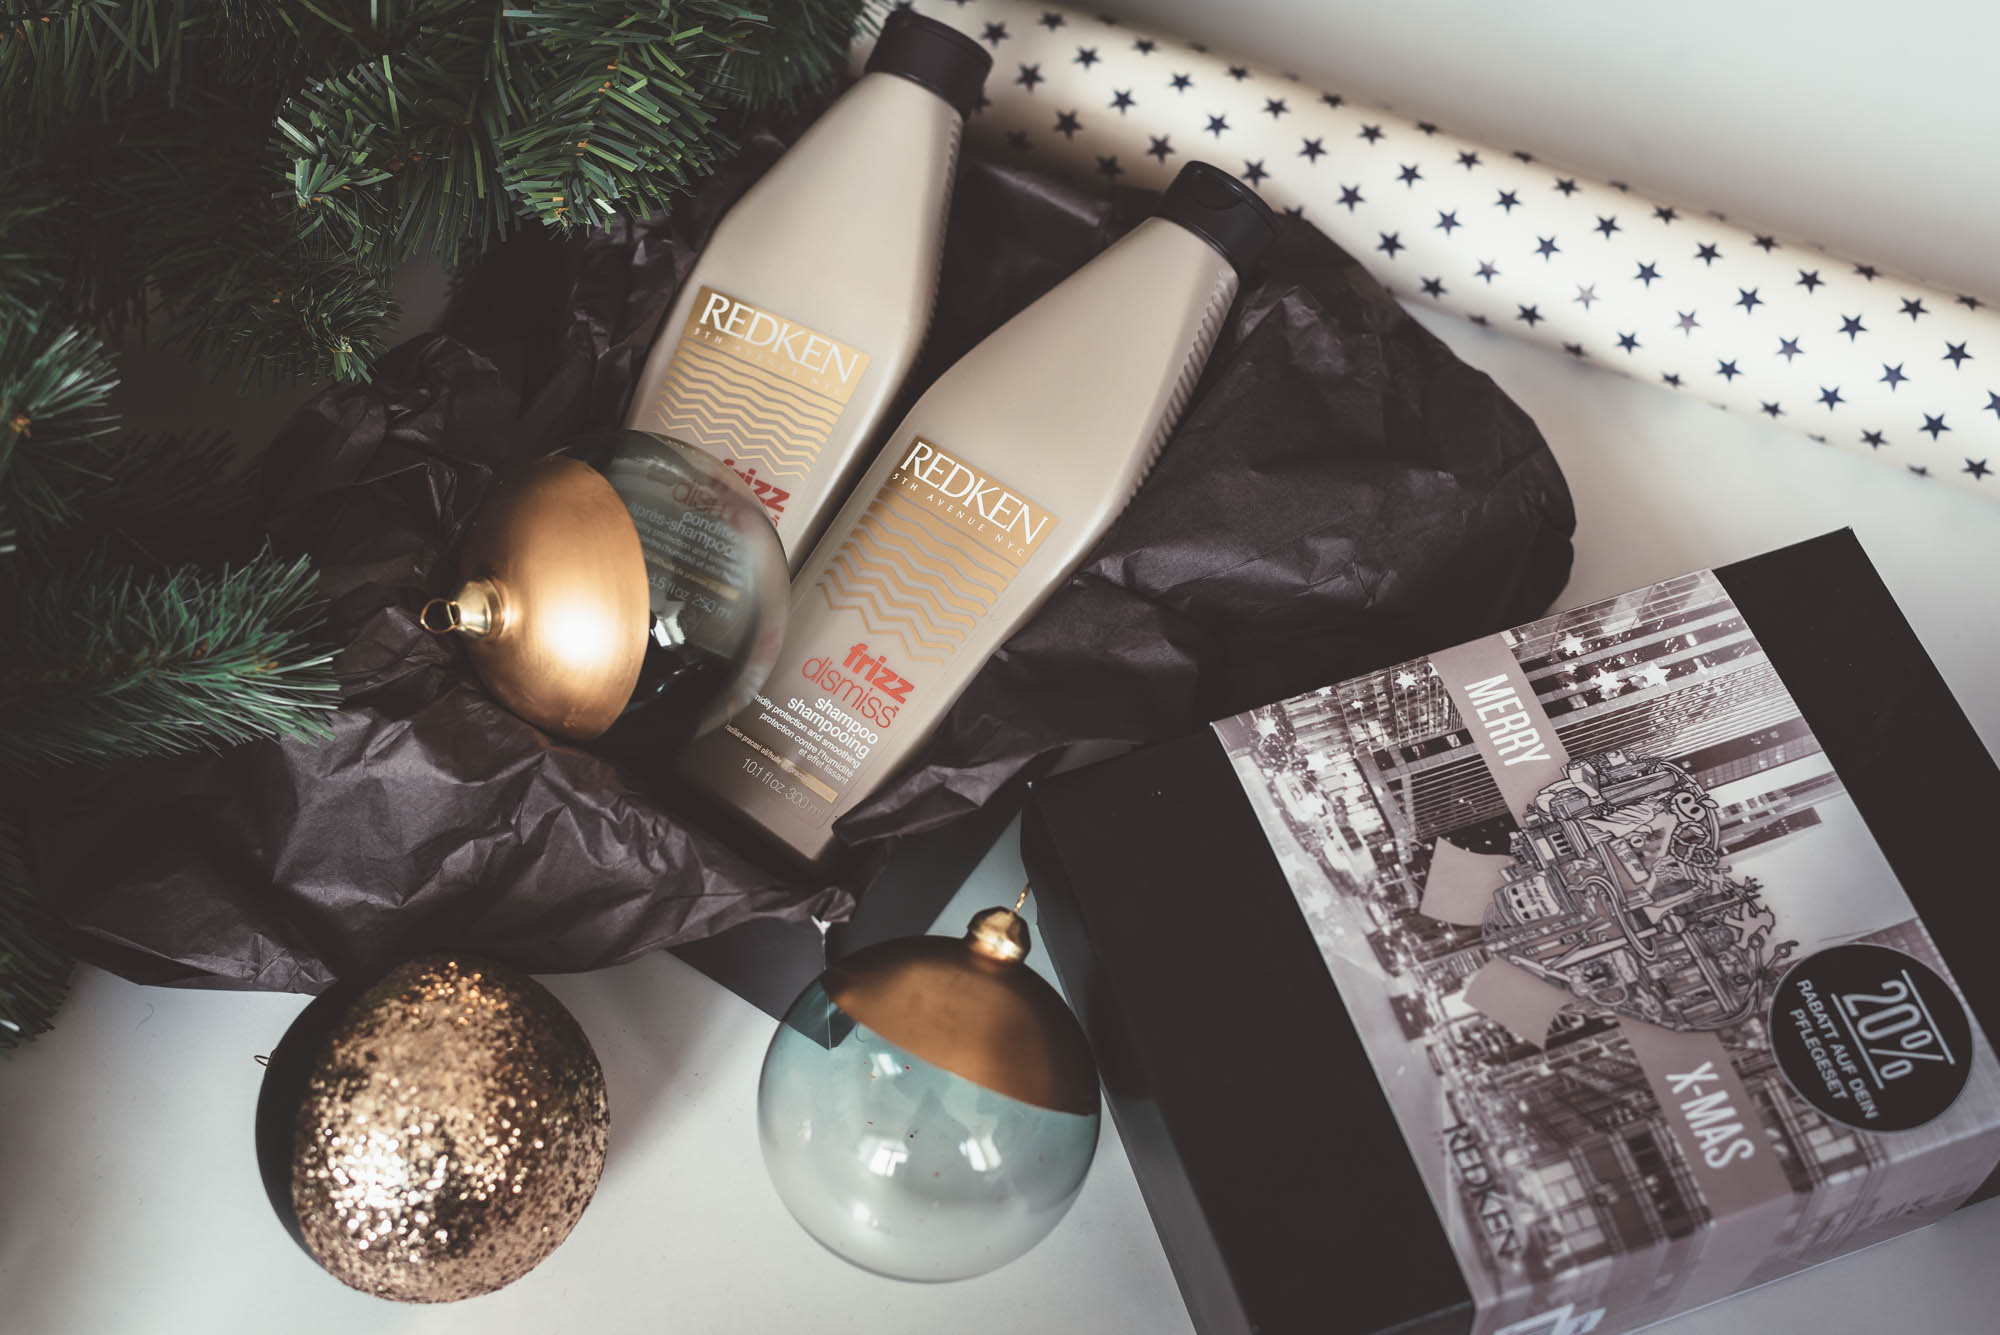 Christmas Gift Guide for Her | Redken Shampoo & Conditioner XMAS Gift Set | Lisa Fiege